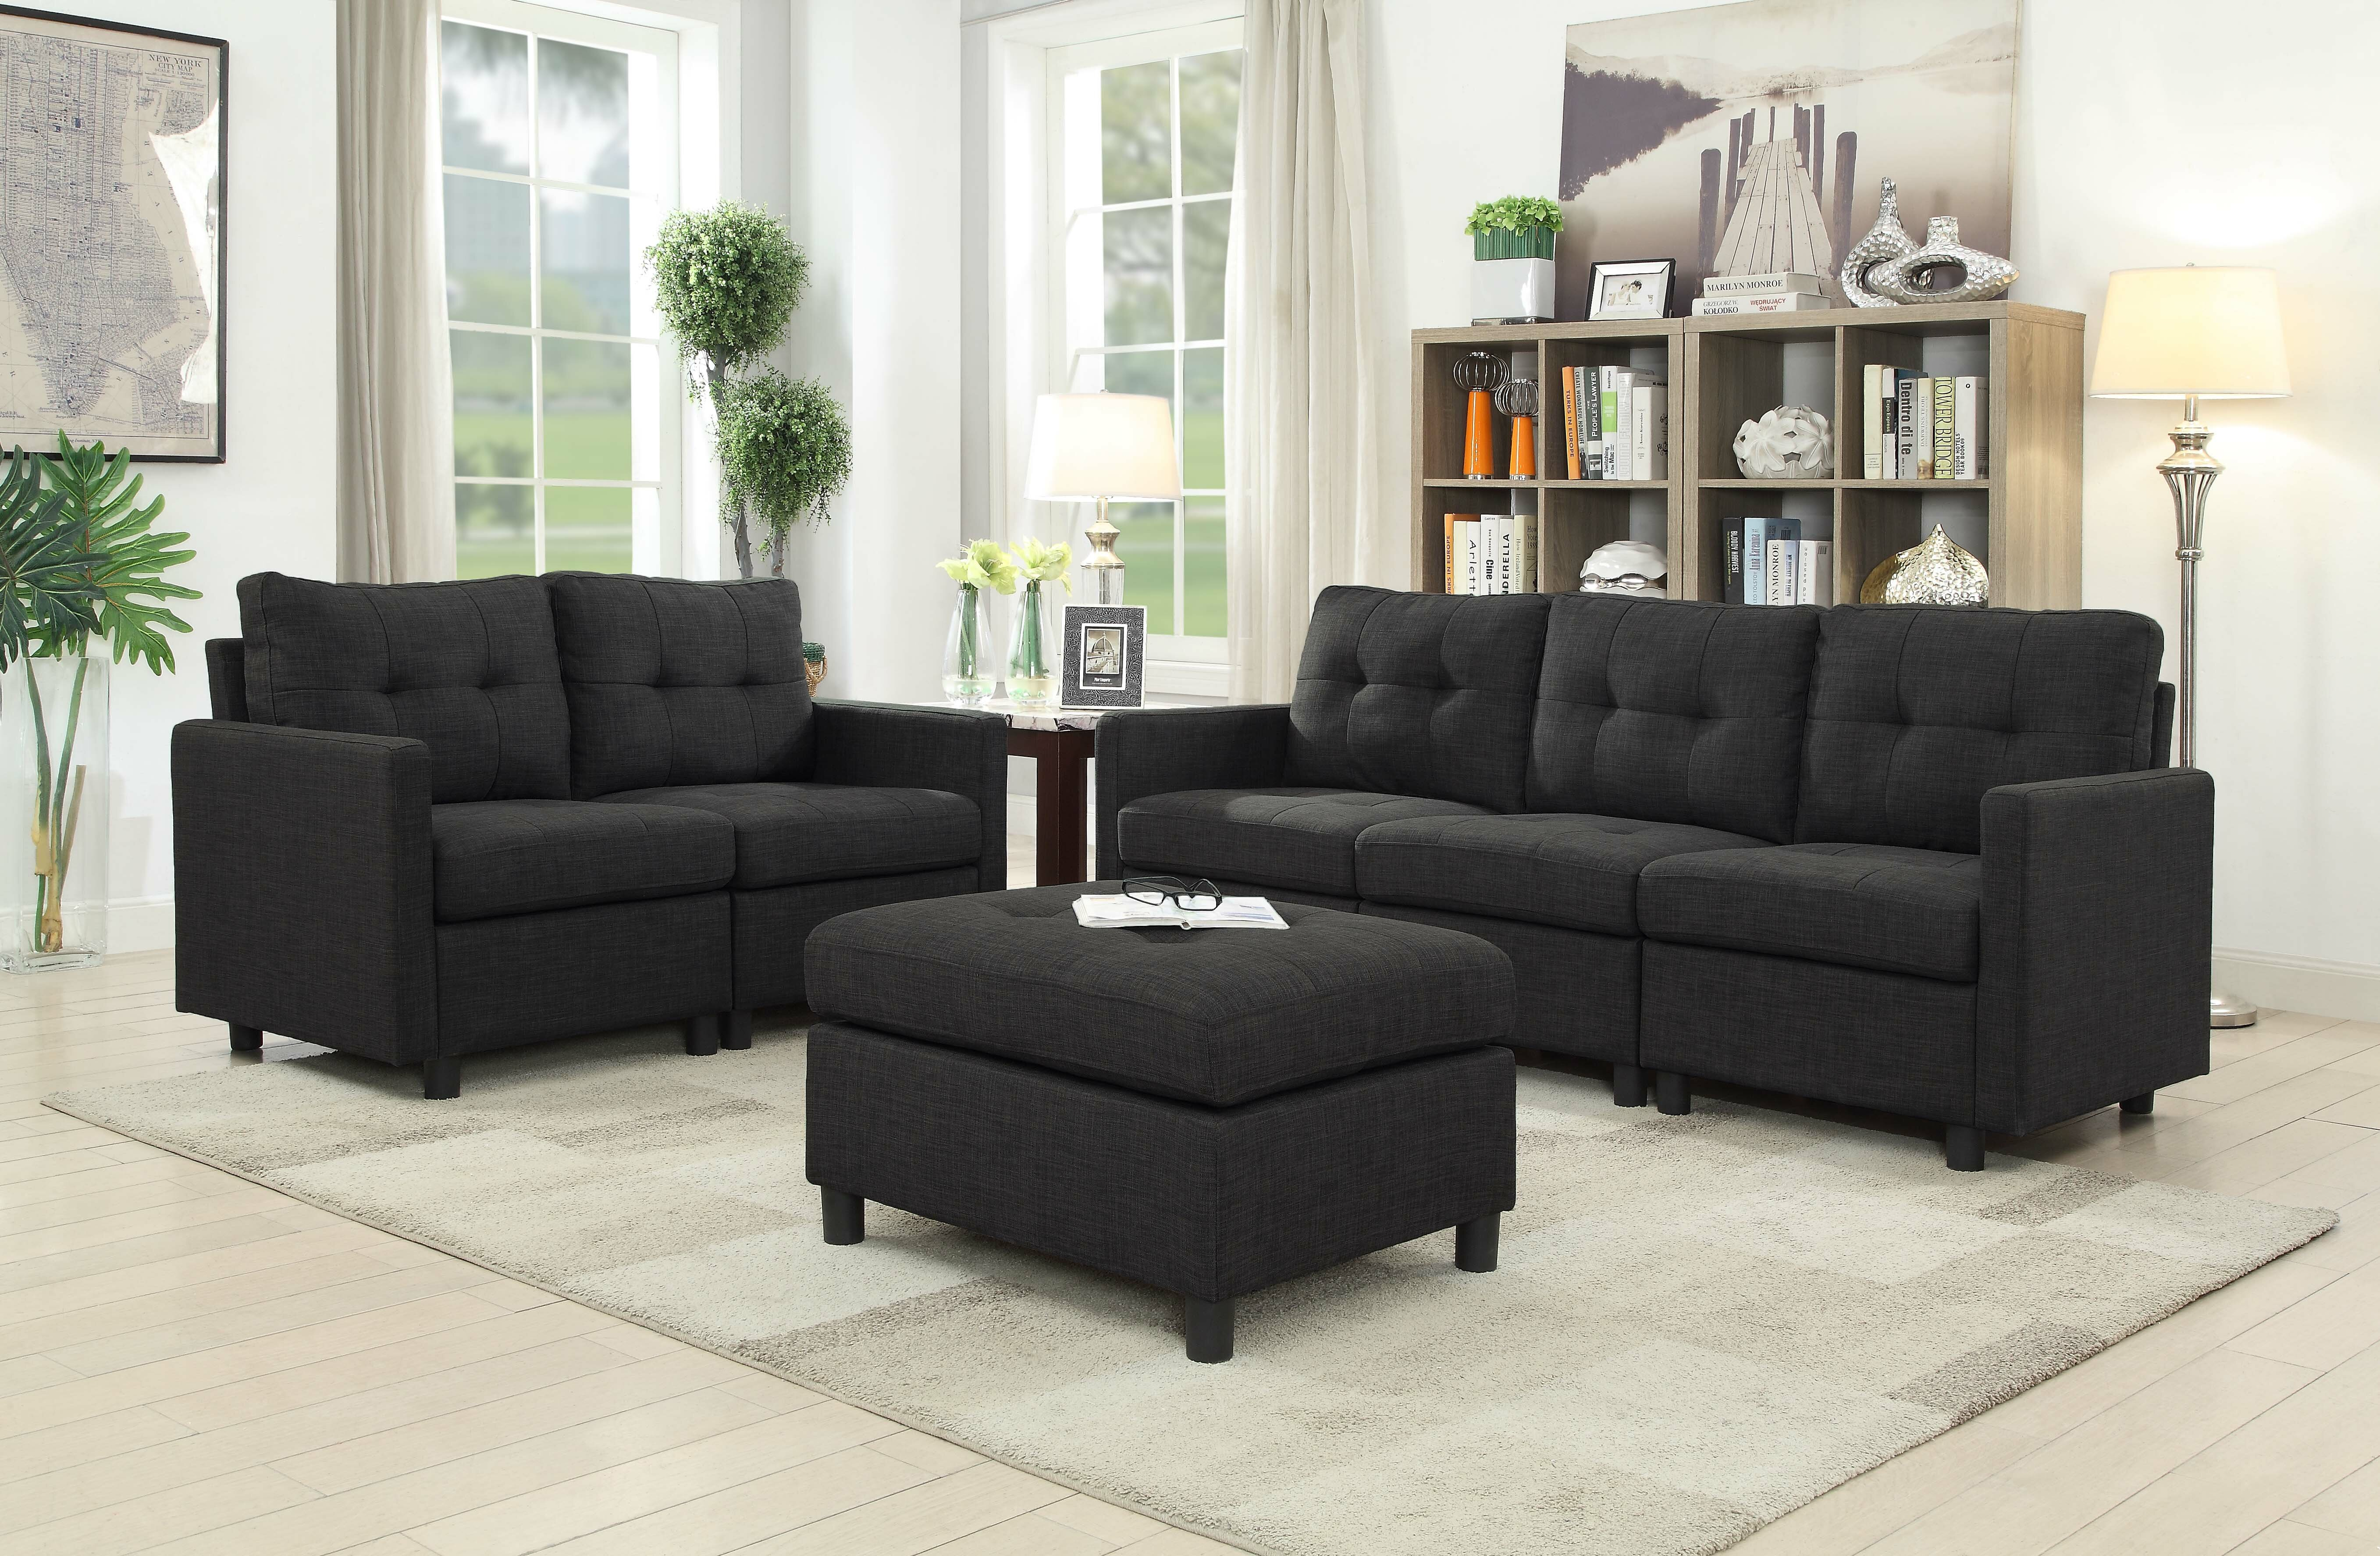 Wetherby 3 Piece Living Room Set